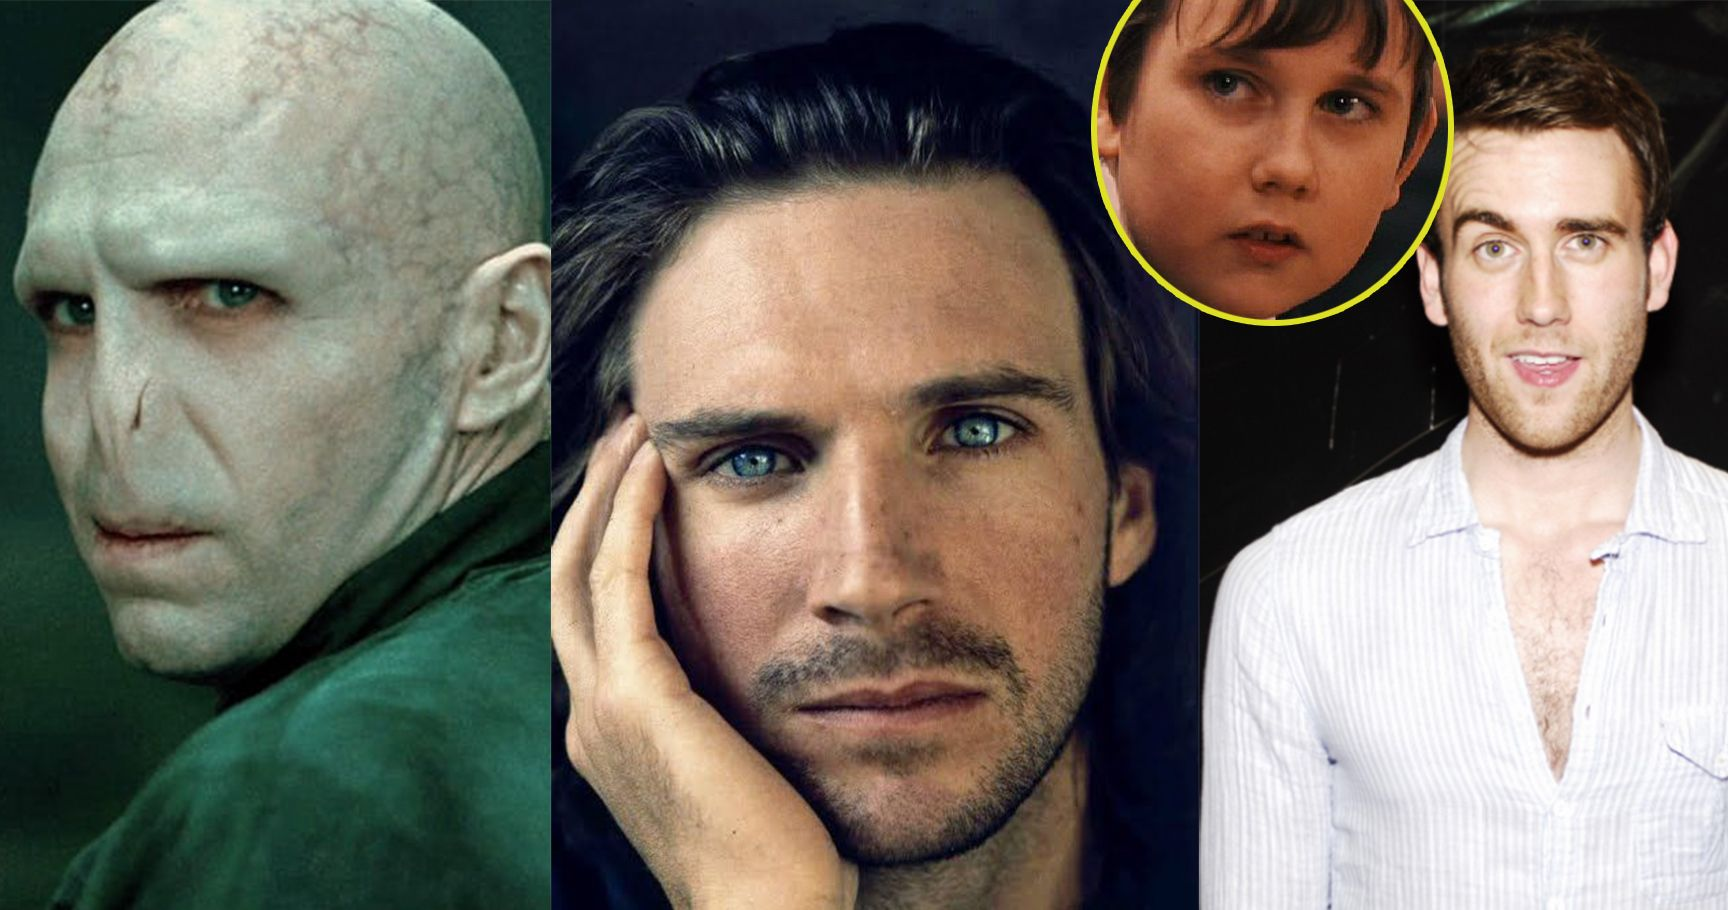 15 'Harry Potter' Characters That Are Undercover Really Good-Looking